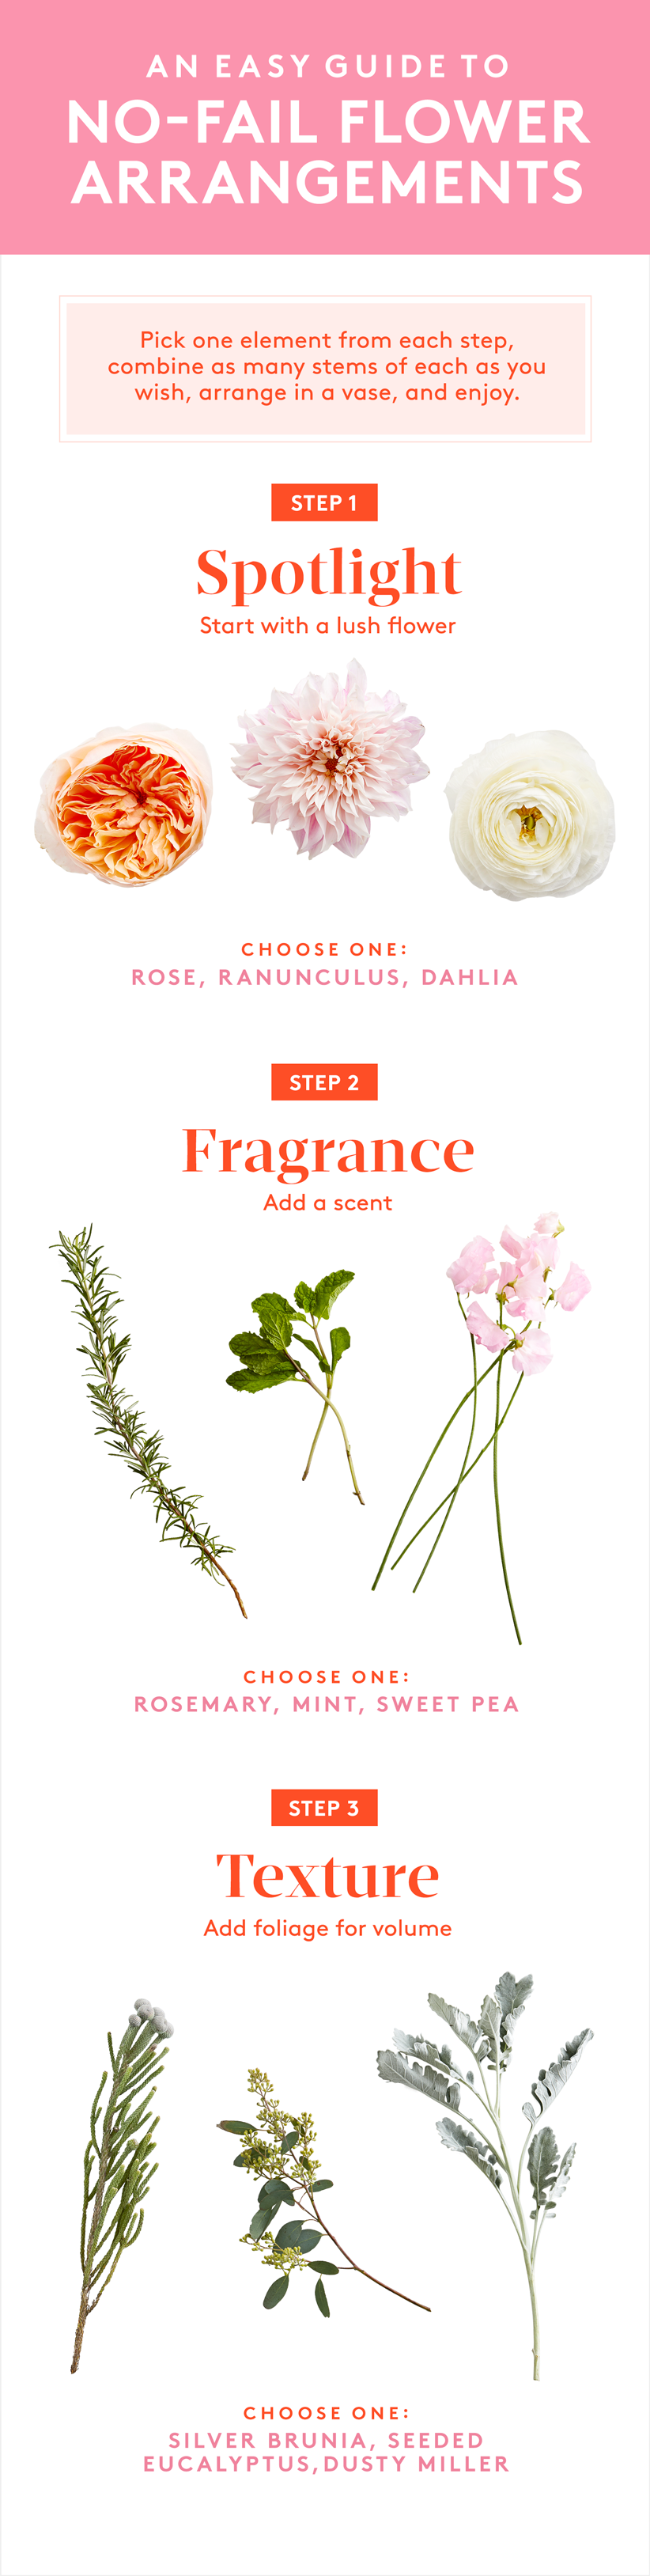 An Easy Guide to No-Fail Flower Arrangements